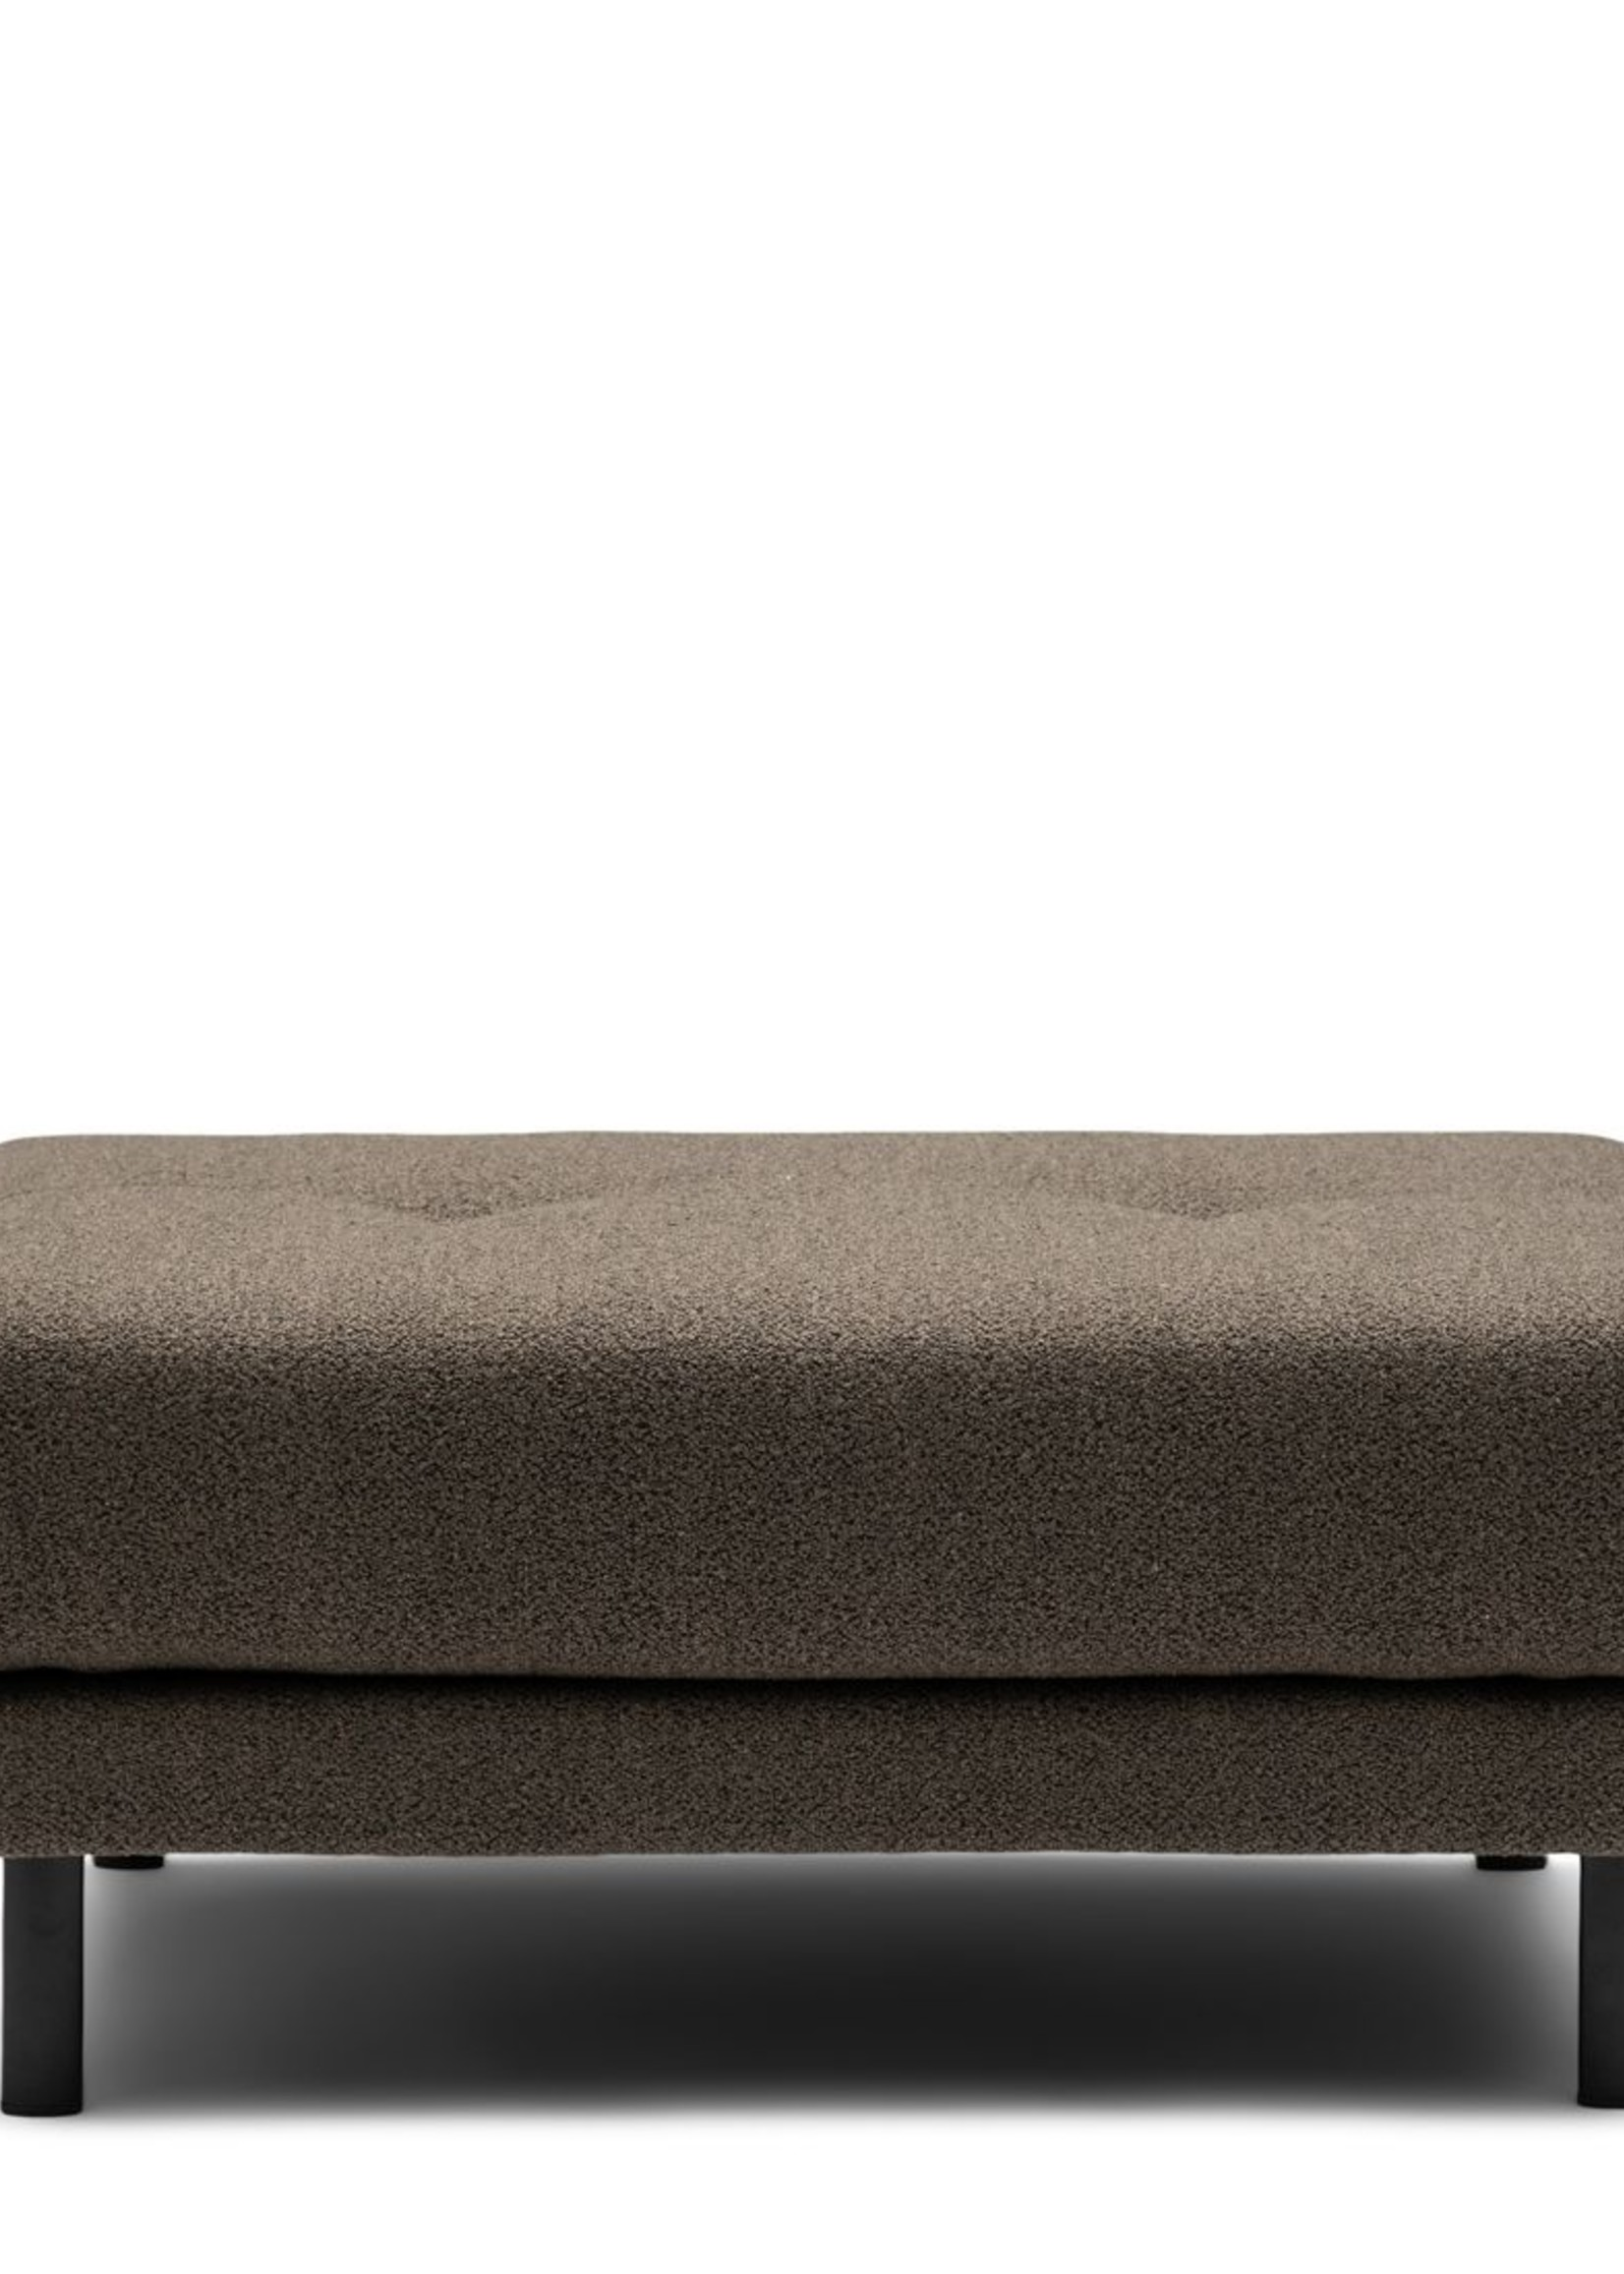 Riviera Maison Bal Harbour Footstool Boucle HedgeH